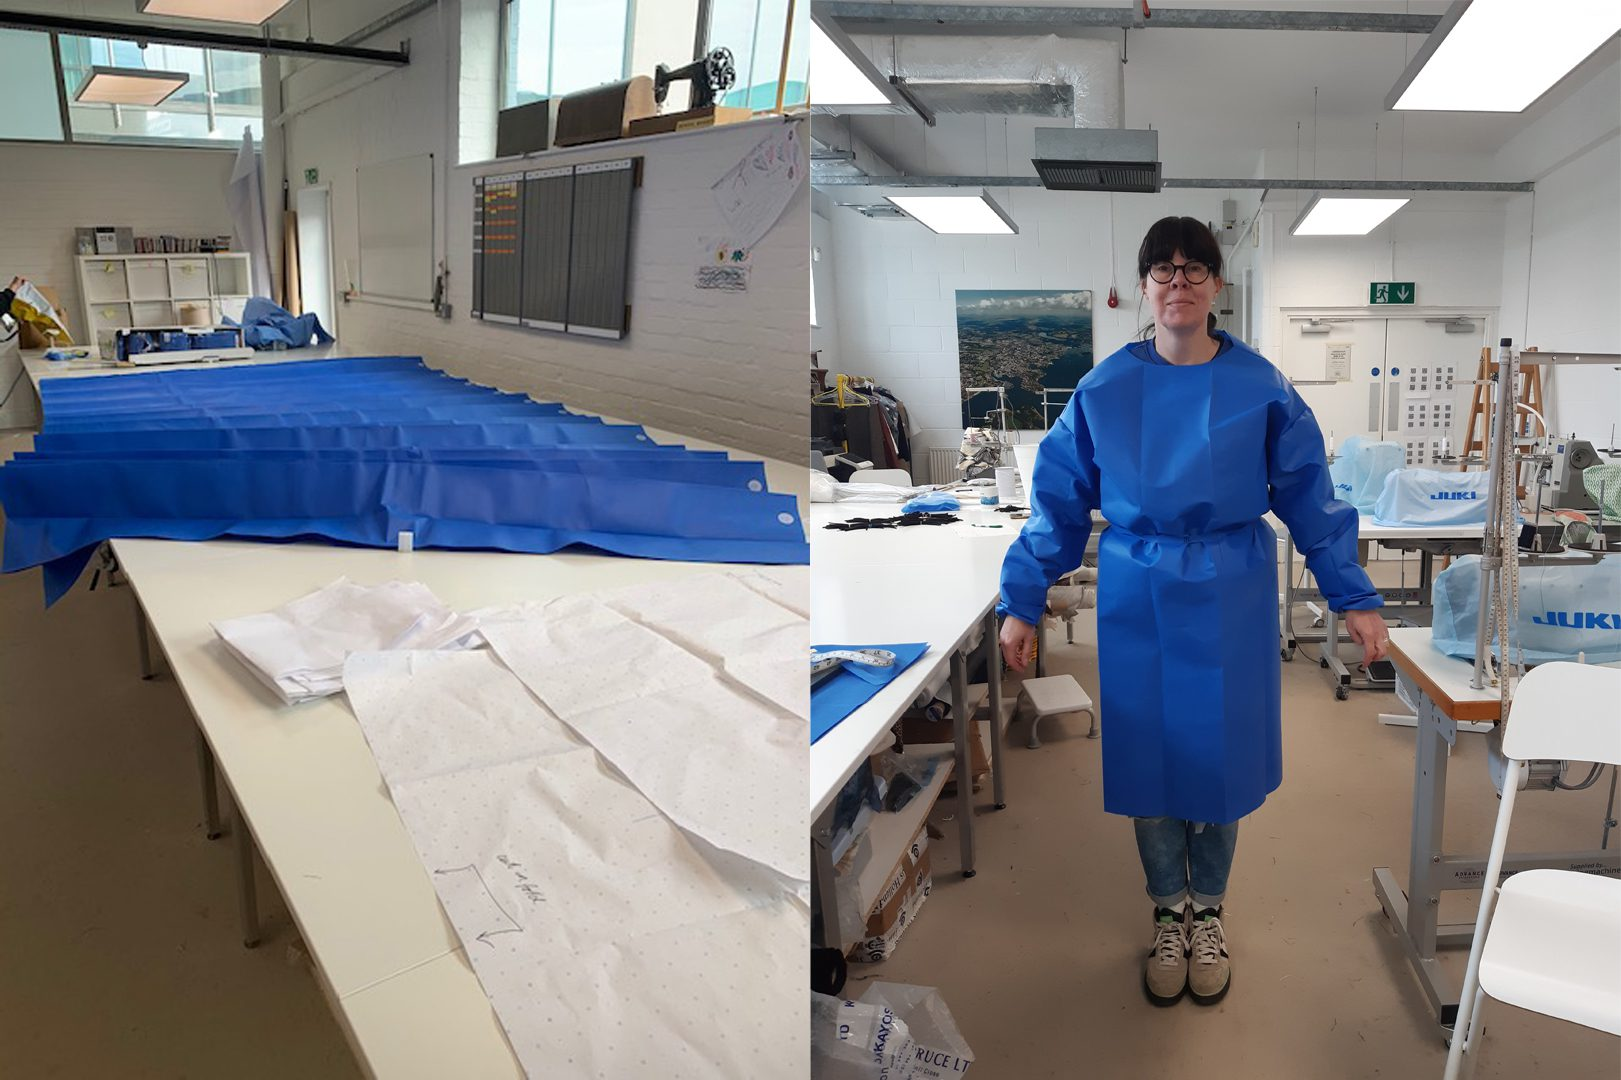 Makers HQ supports Plymouth health workers by making workwear for COVID-19 testing site